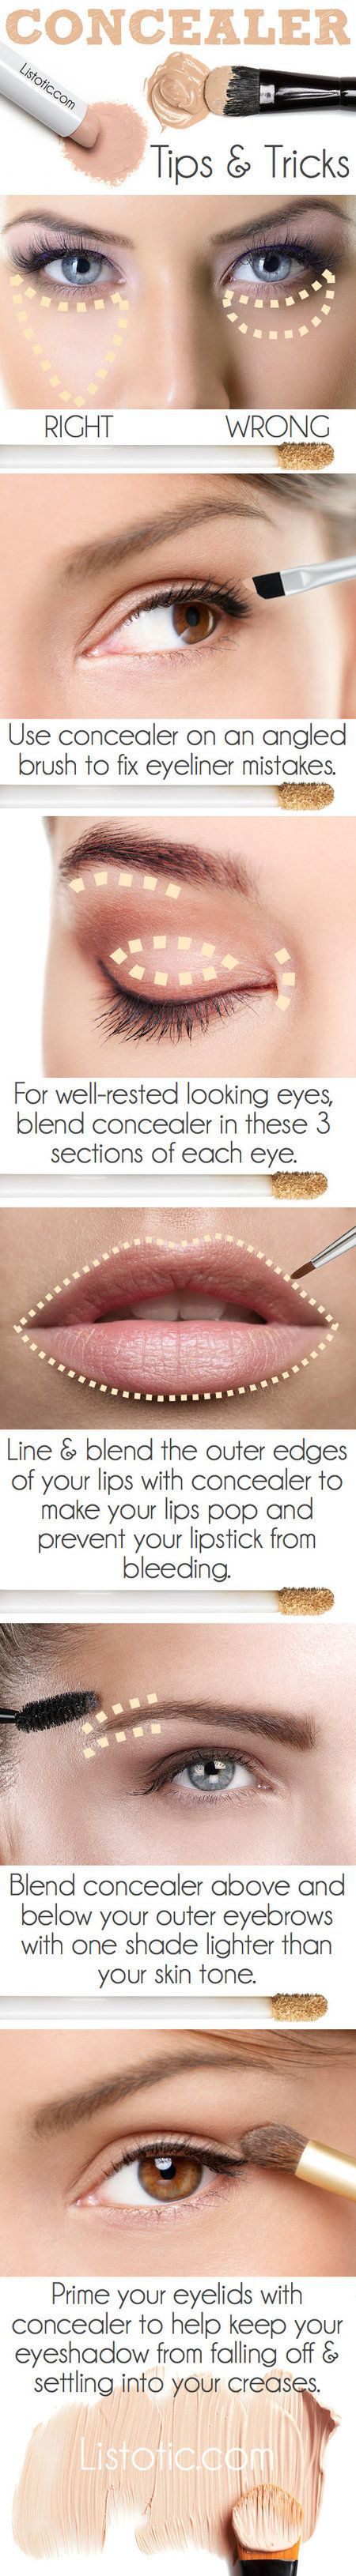 Are you looking for concealer tips and tricks that will make you look like a celebrity makeup artist has done your makeup? This tutorial will have you looking beauty pageant ready.   Read, https://thepageantplanet.com/the-best-way-to-apply-your-concealer/ for all the details.